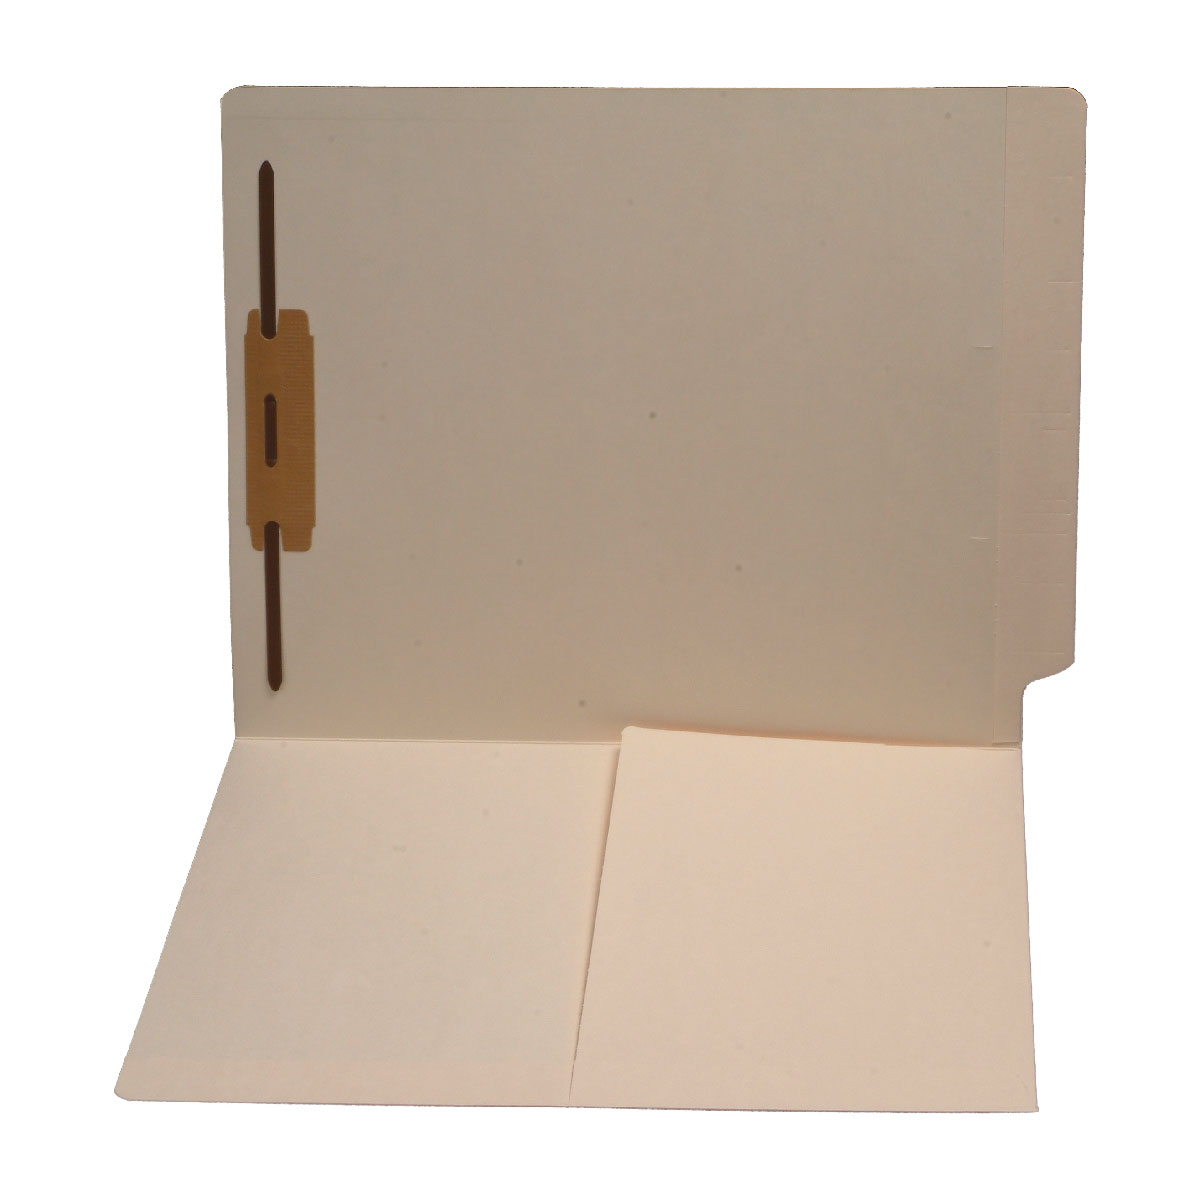 S-9004B - 11 pt Manila Folders, Full Cut End Tab, Letter Size, 1/2 Pocket Inside Front, Fastener Pos #1 (Case of 250)